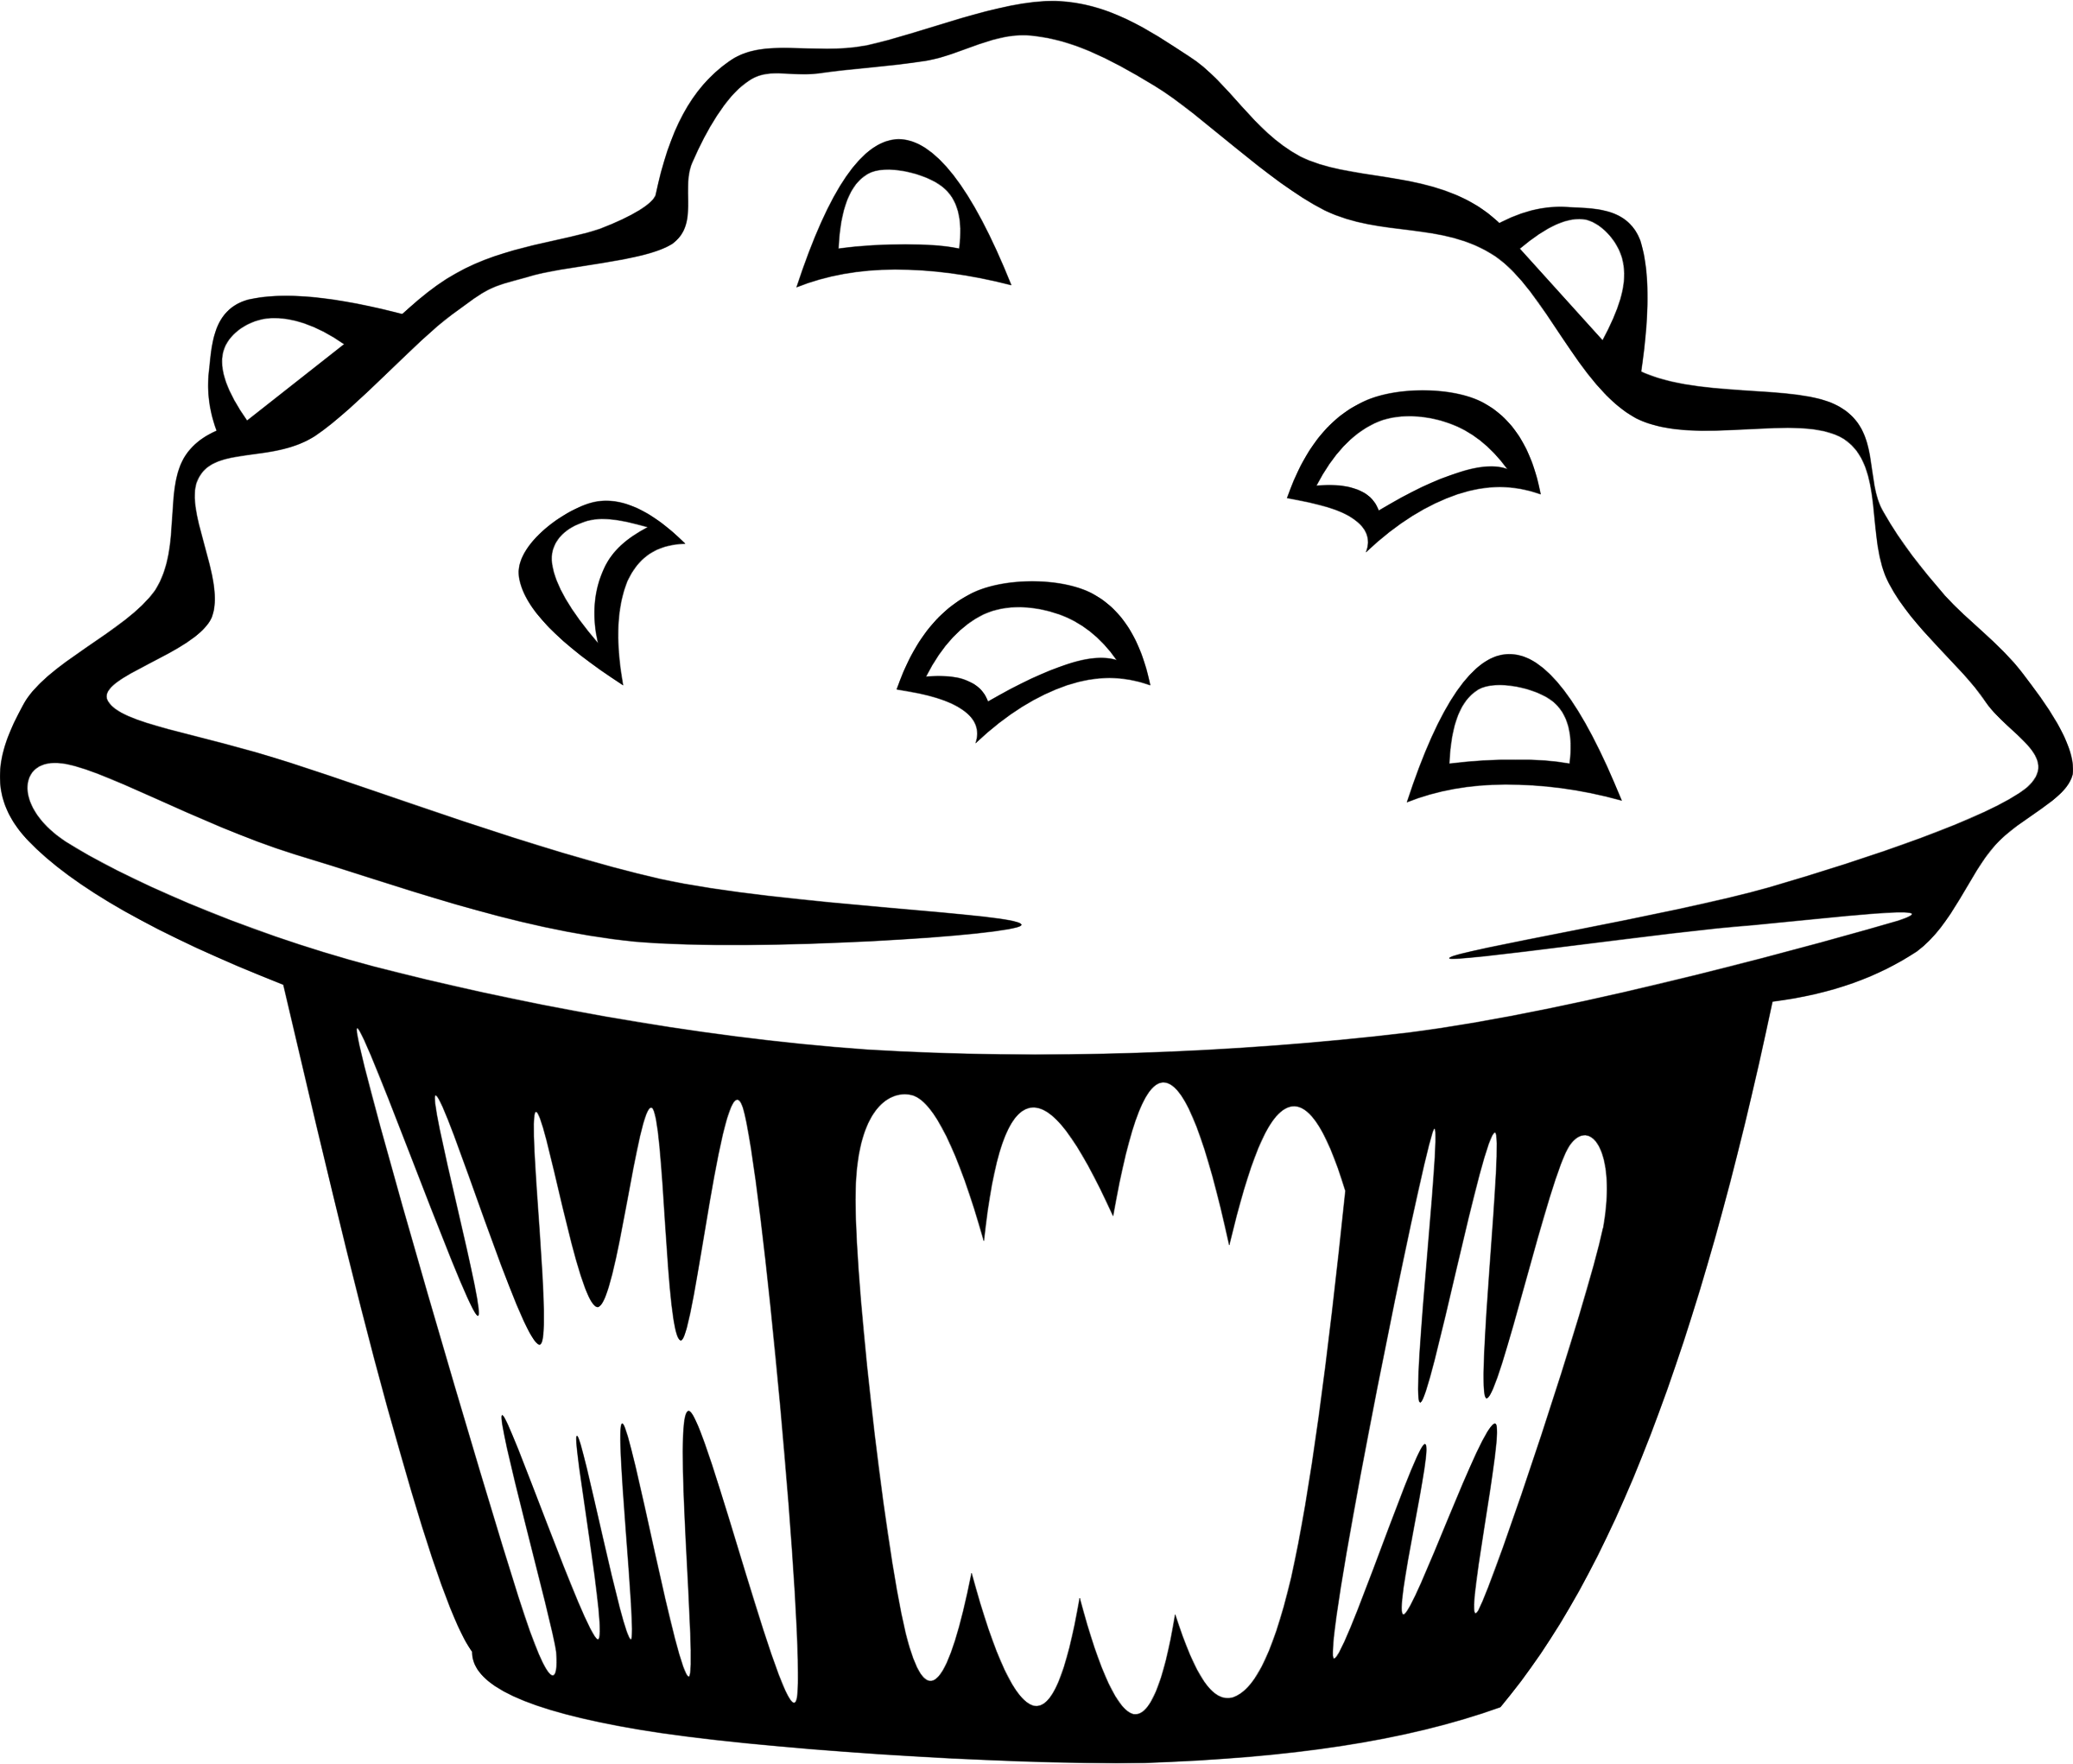 Muffins clipart group. Breakfast drawing chocolate